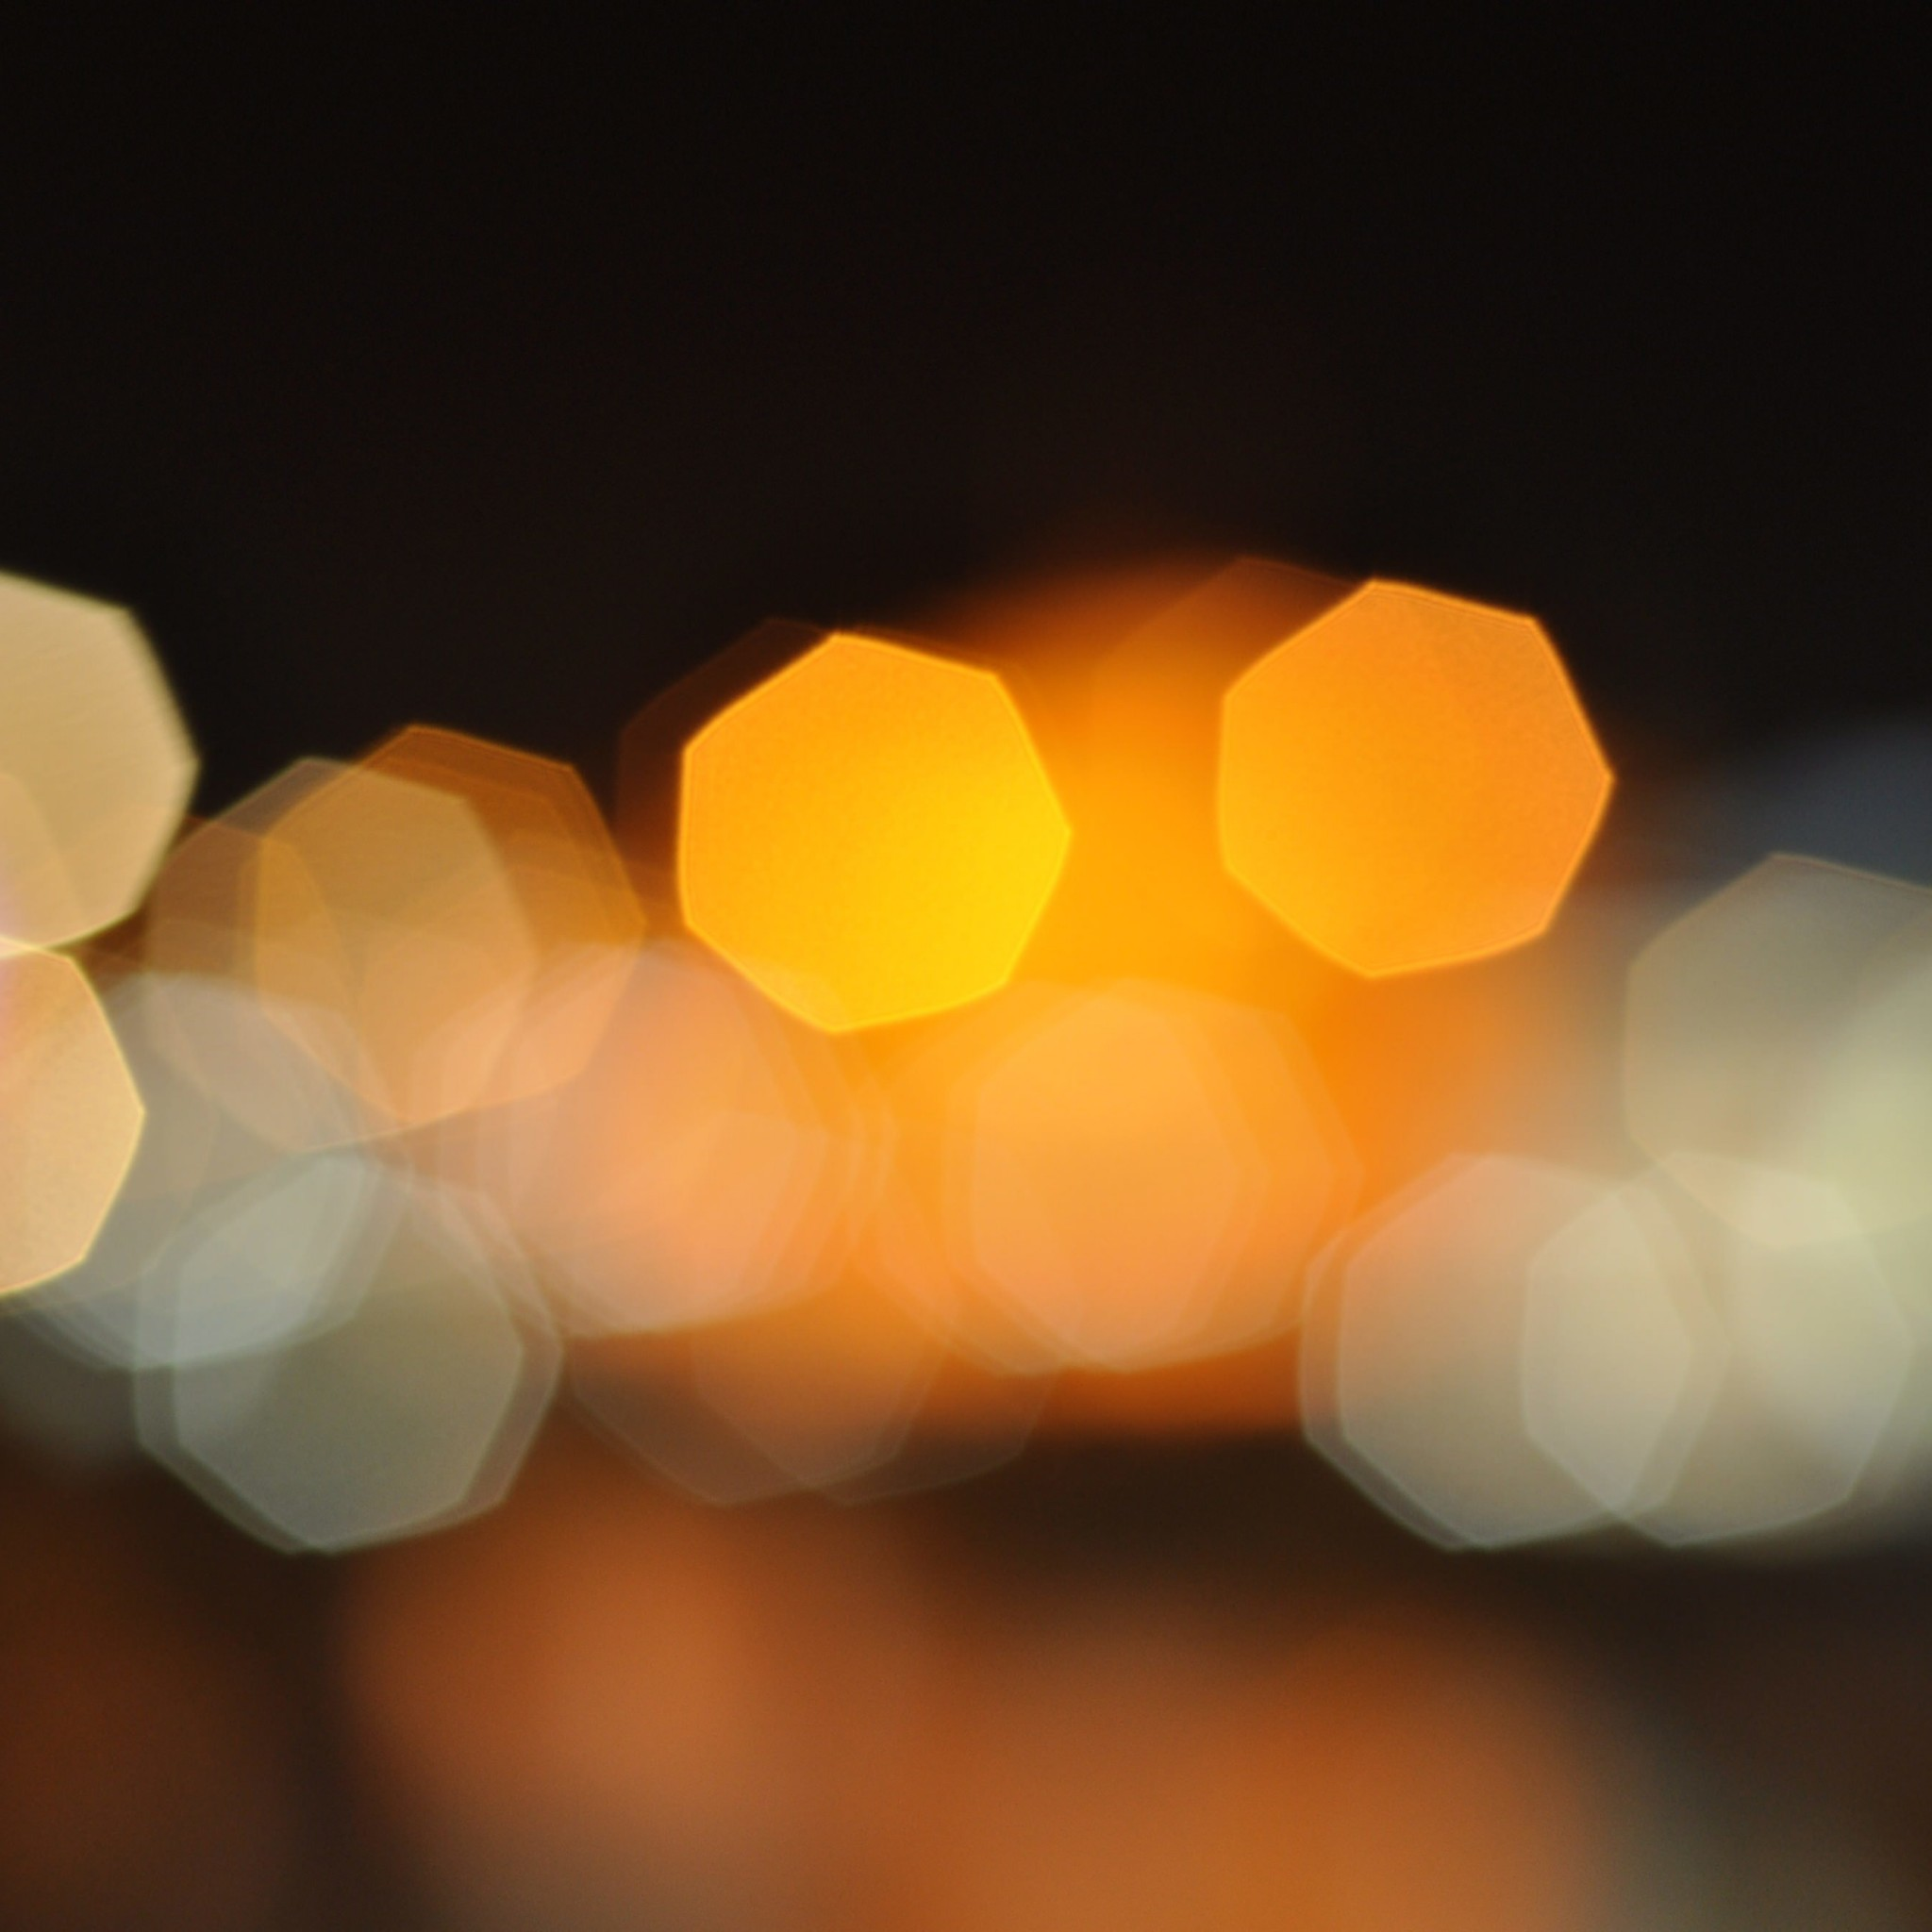 Blurred City Lights Wallpaper for Google Nexus 9